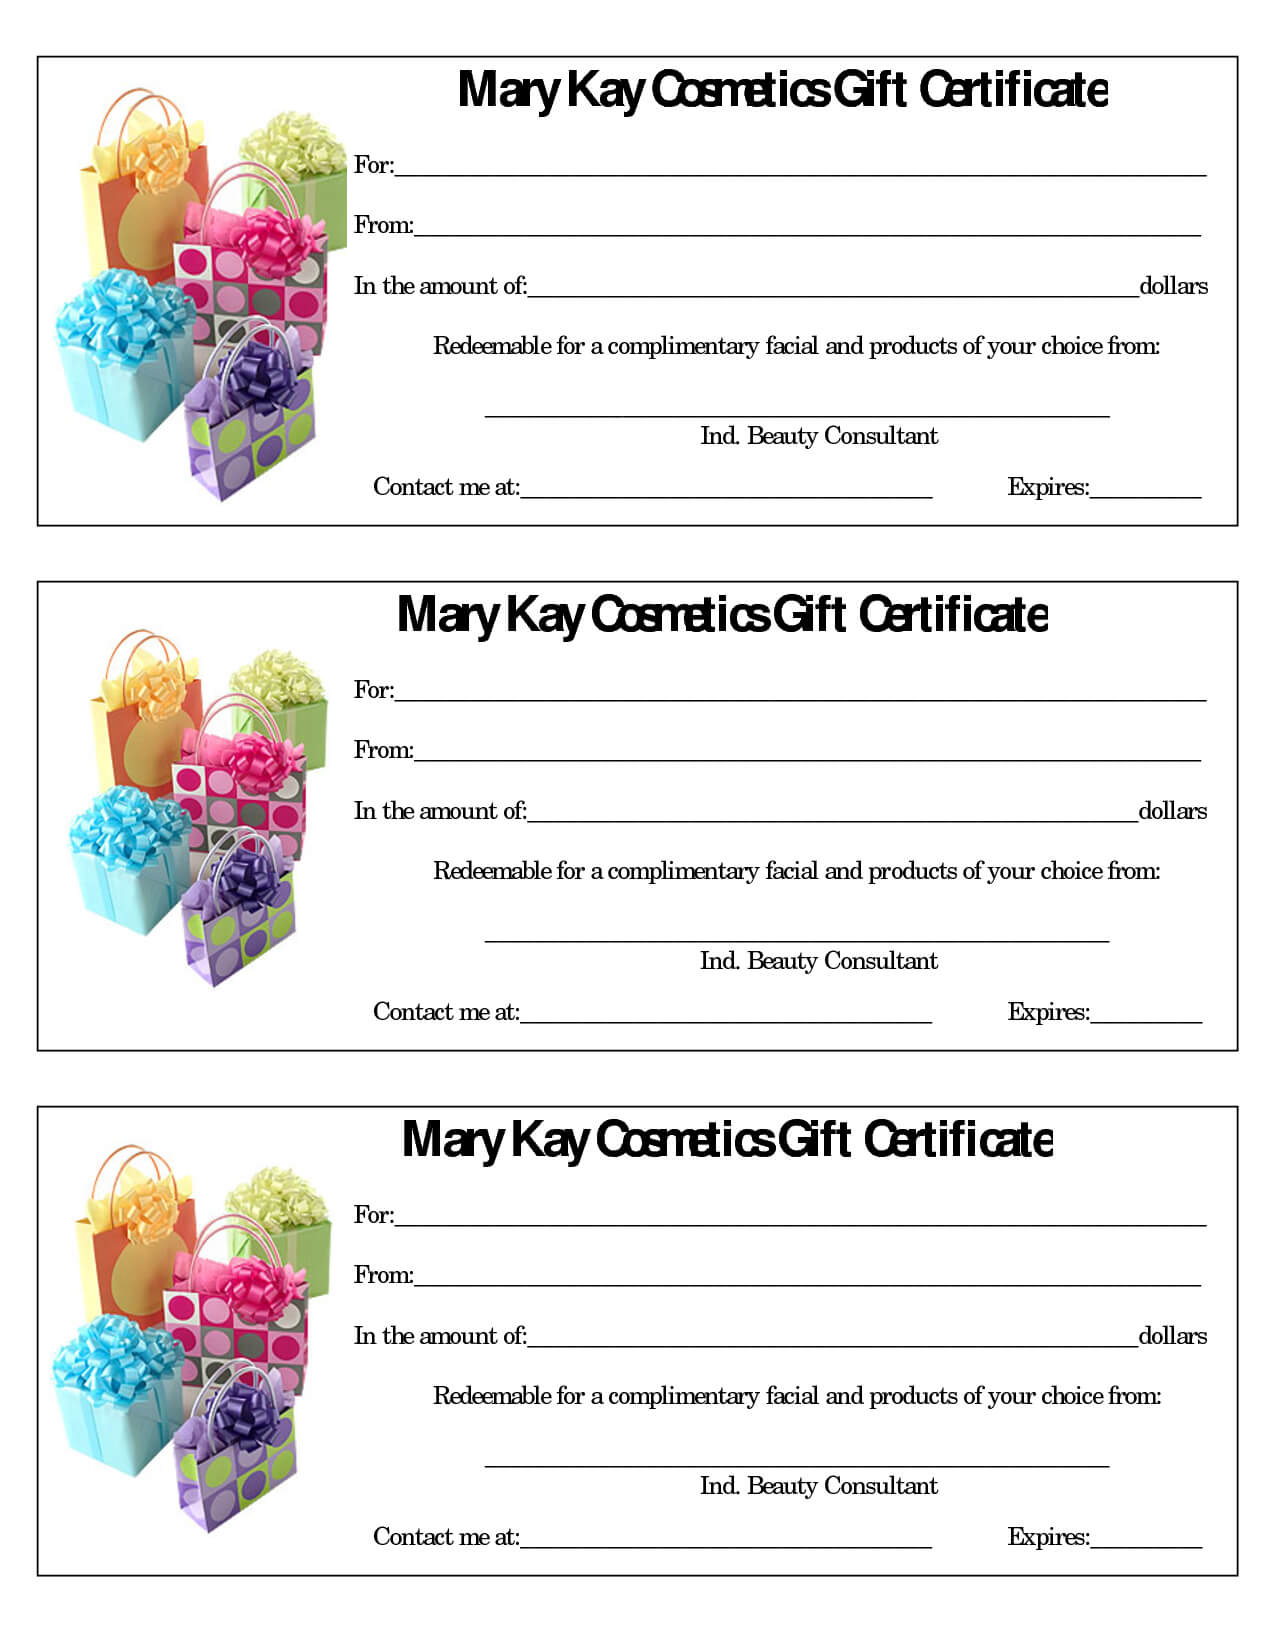 Mary Kay Certificate.636 448 4191. Seckhoff1@marykay Within Mary Kay Gift Certificate Template